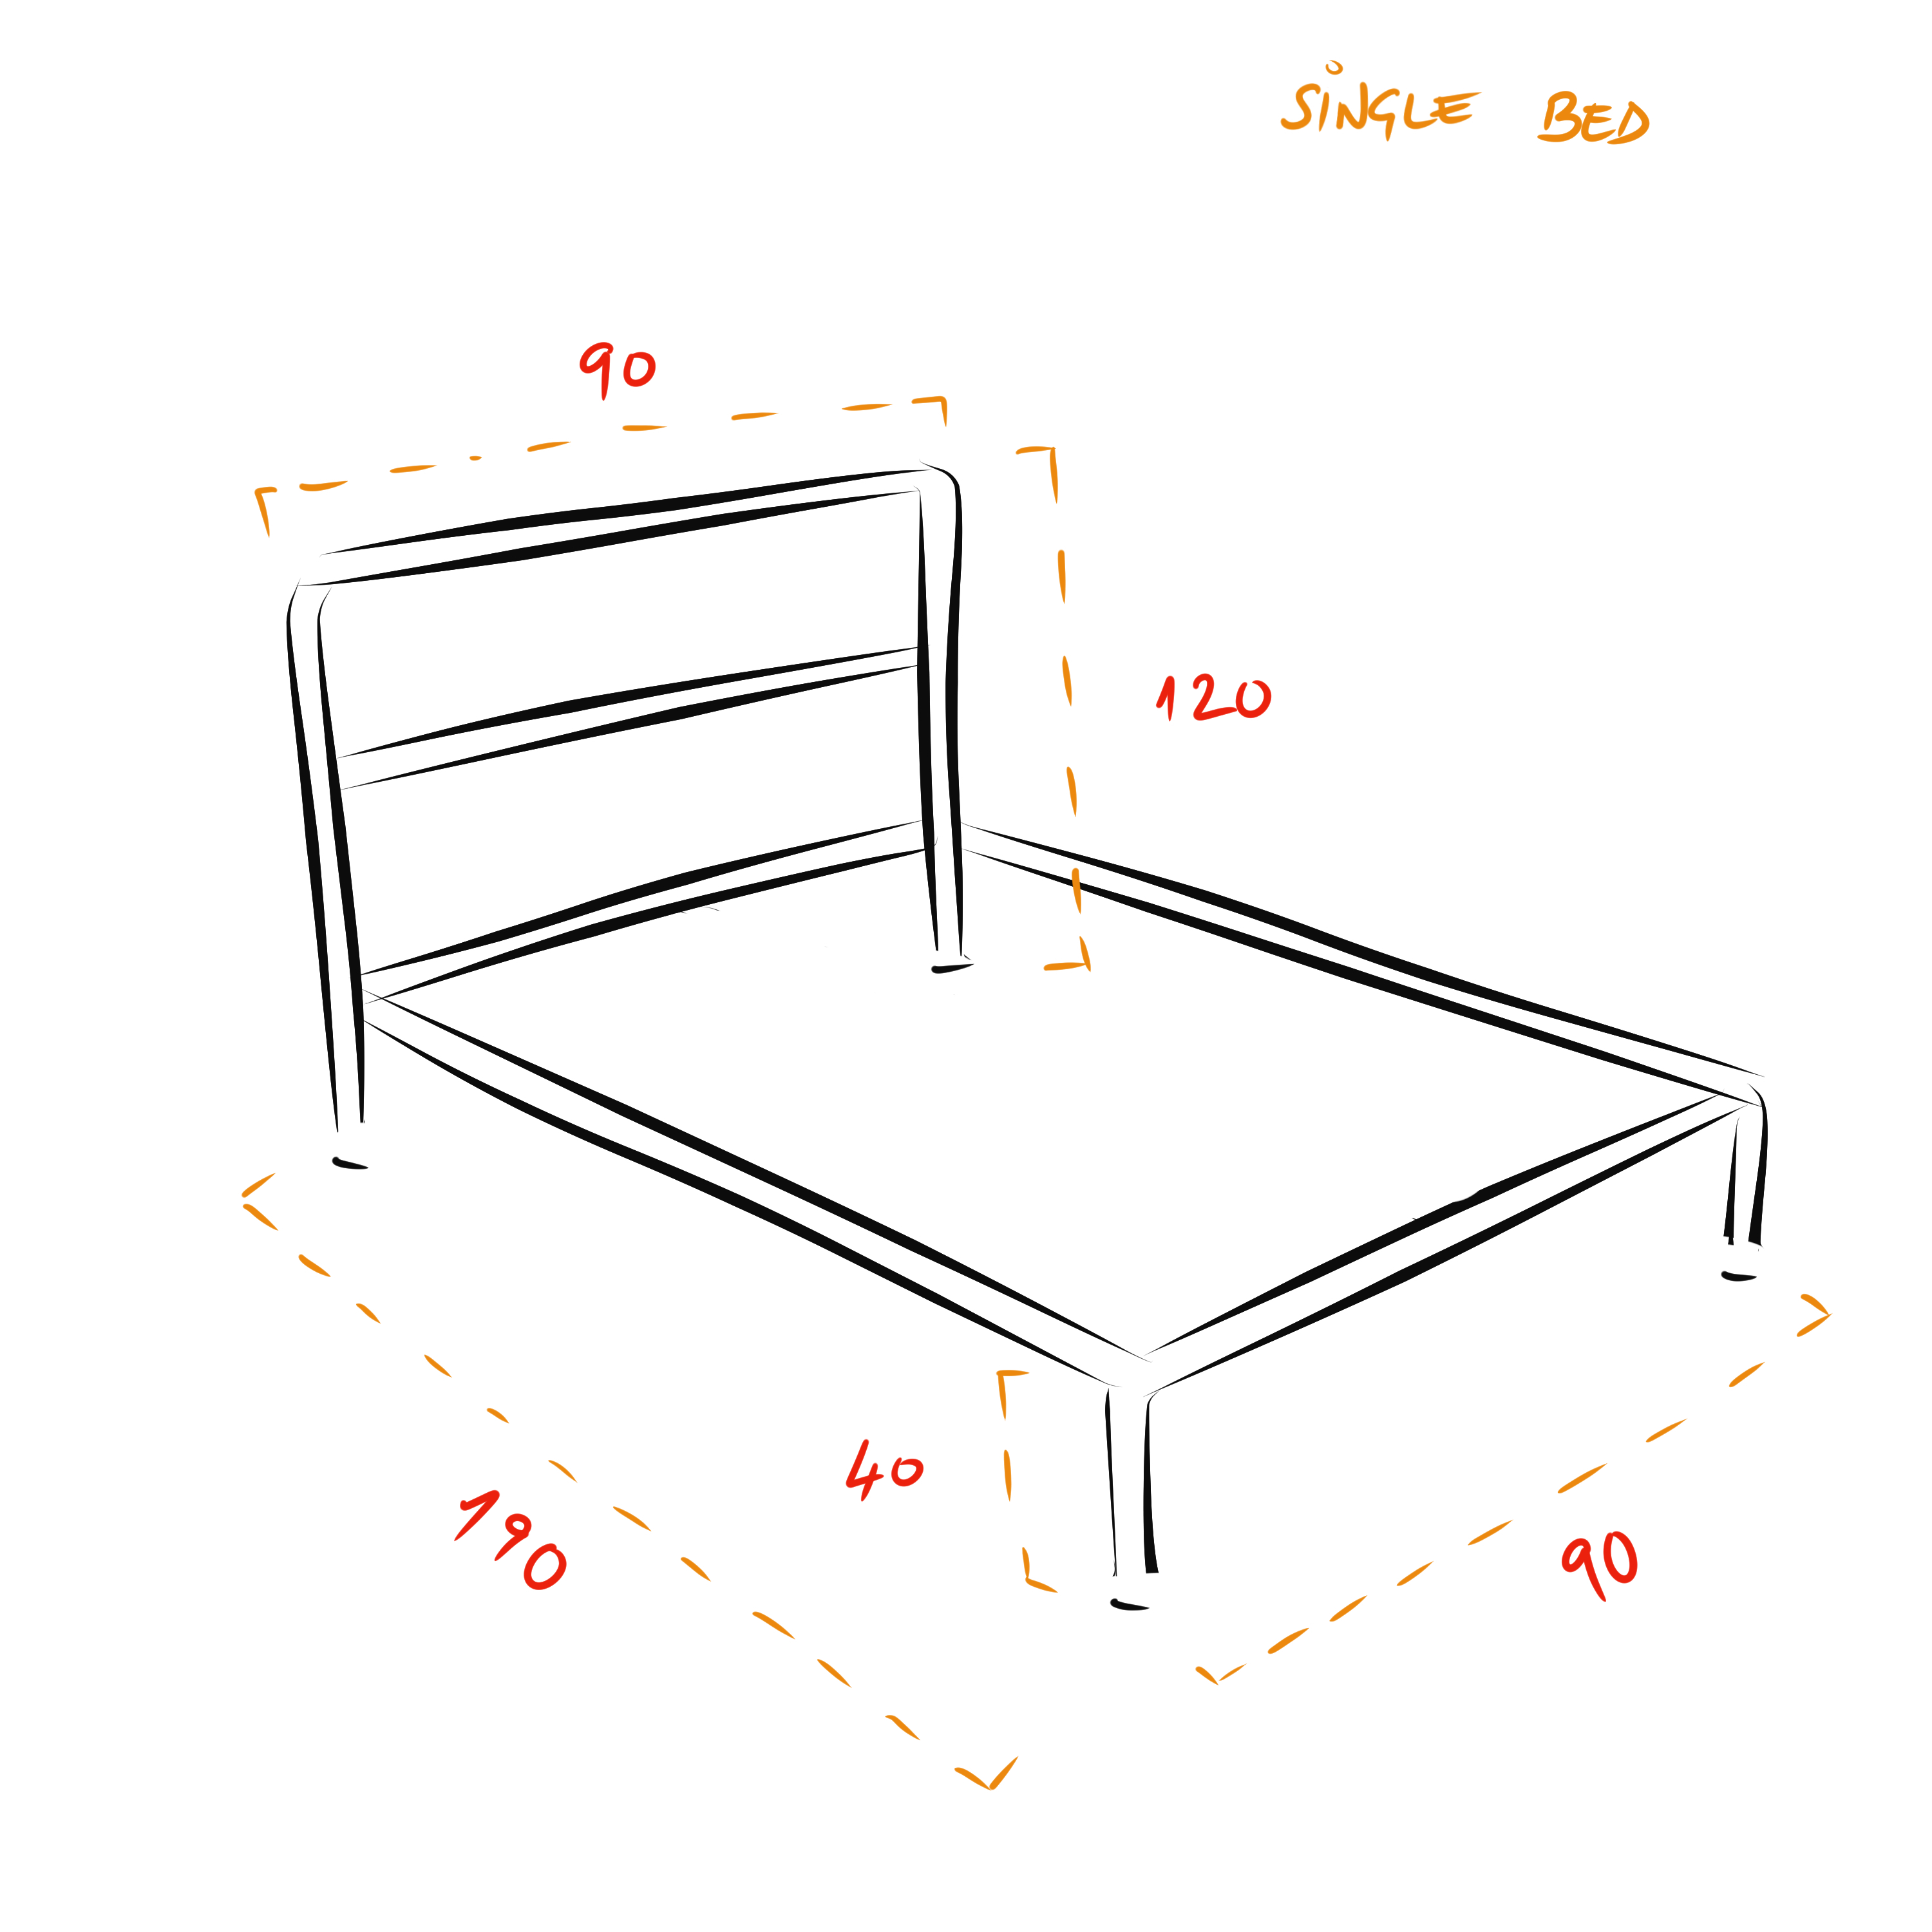 Barbican industrial bed frame - Single